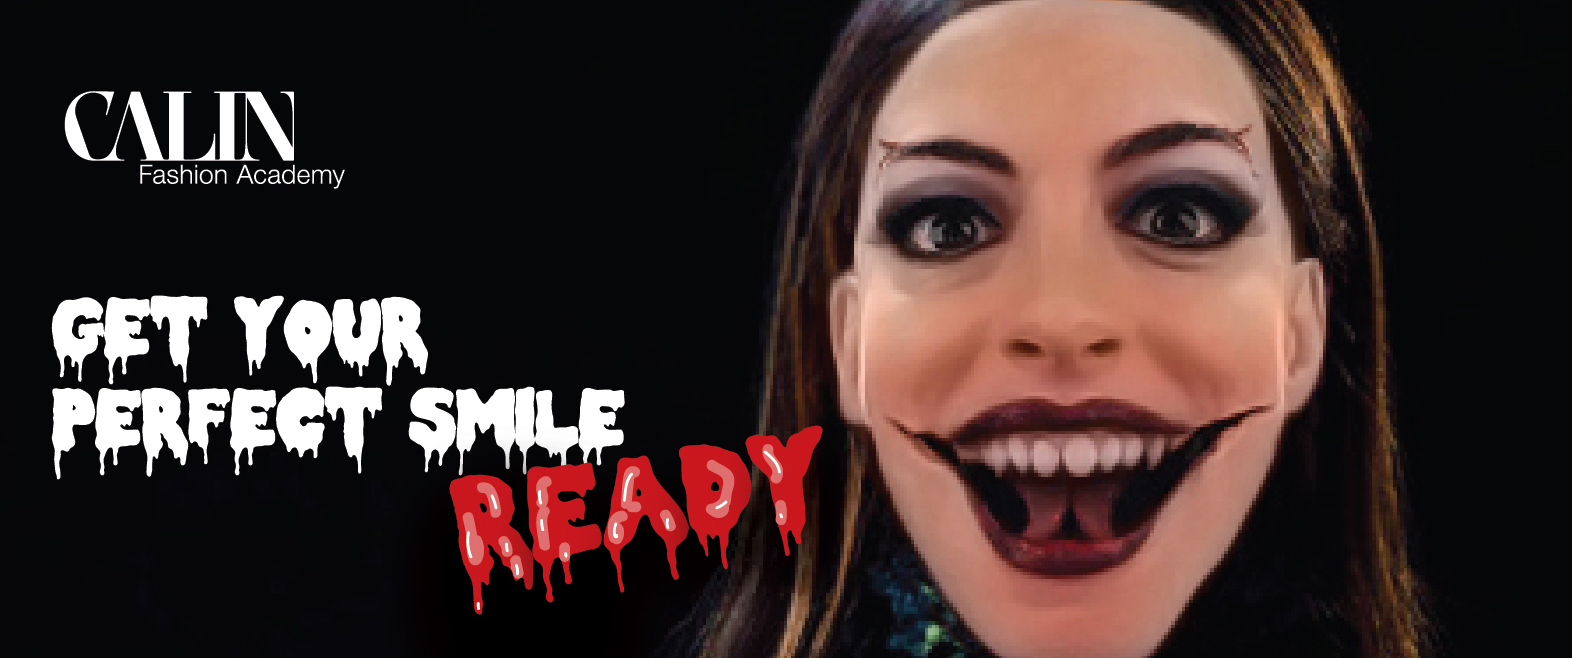 Get your perfect smile ready!